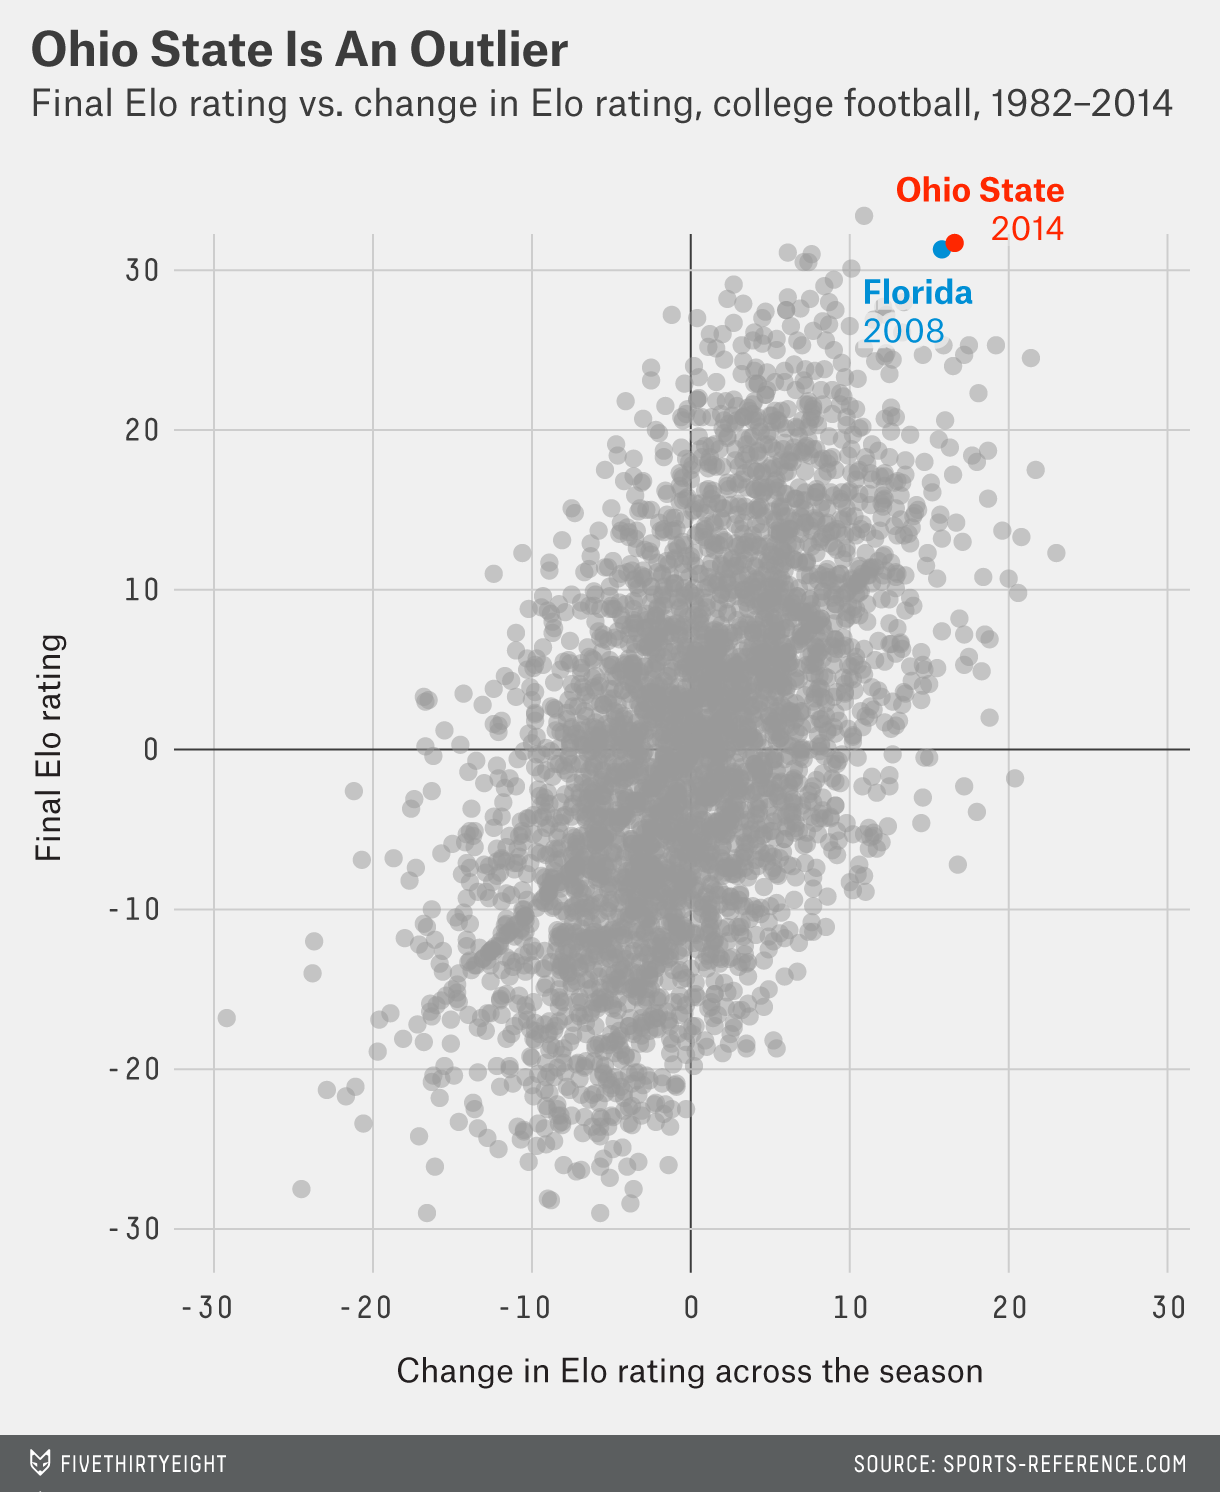 flowers-datalab-ohio-state-crazy-1